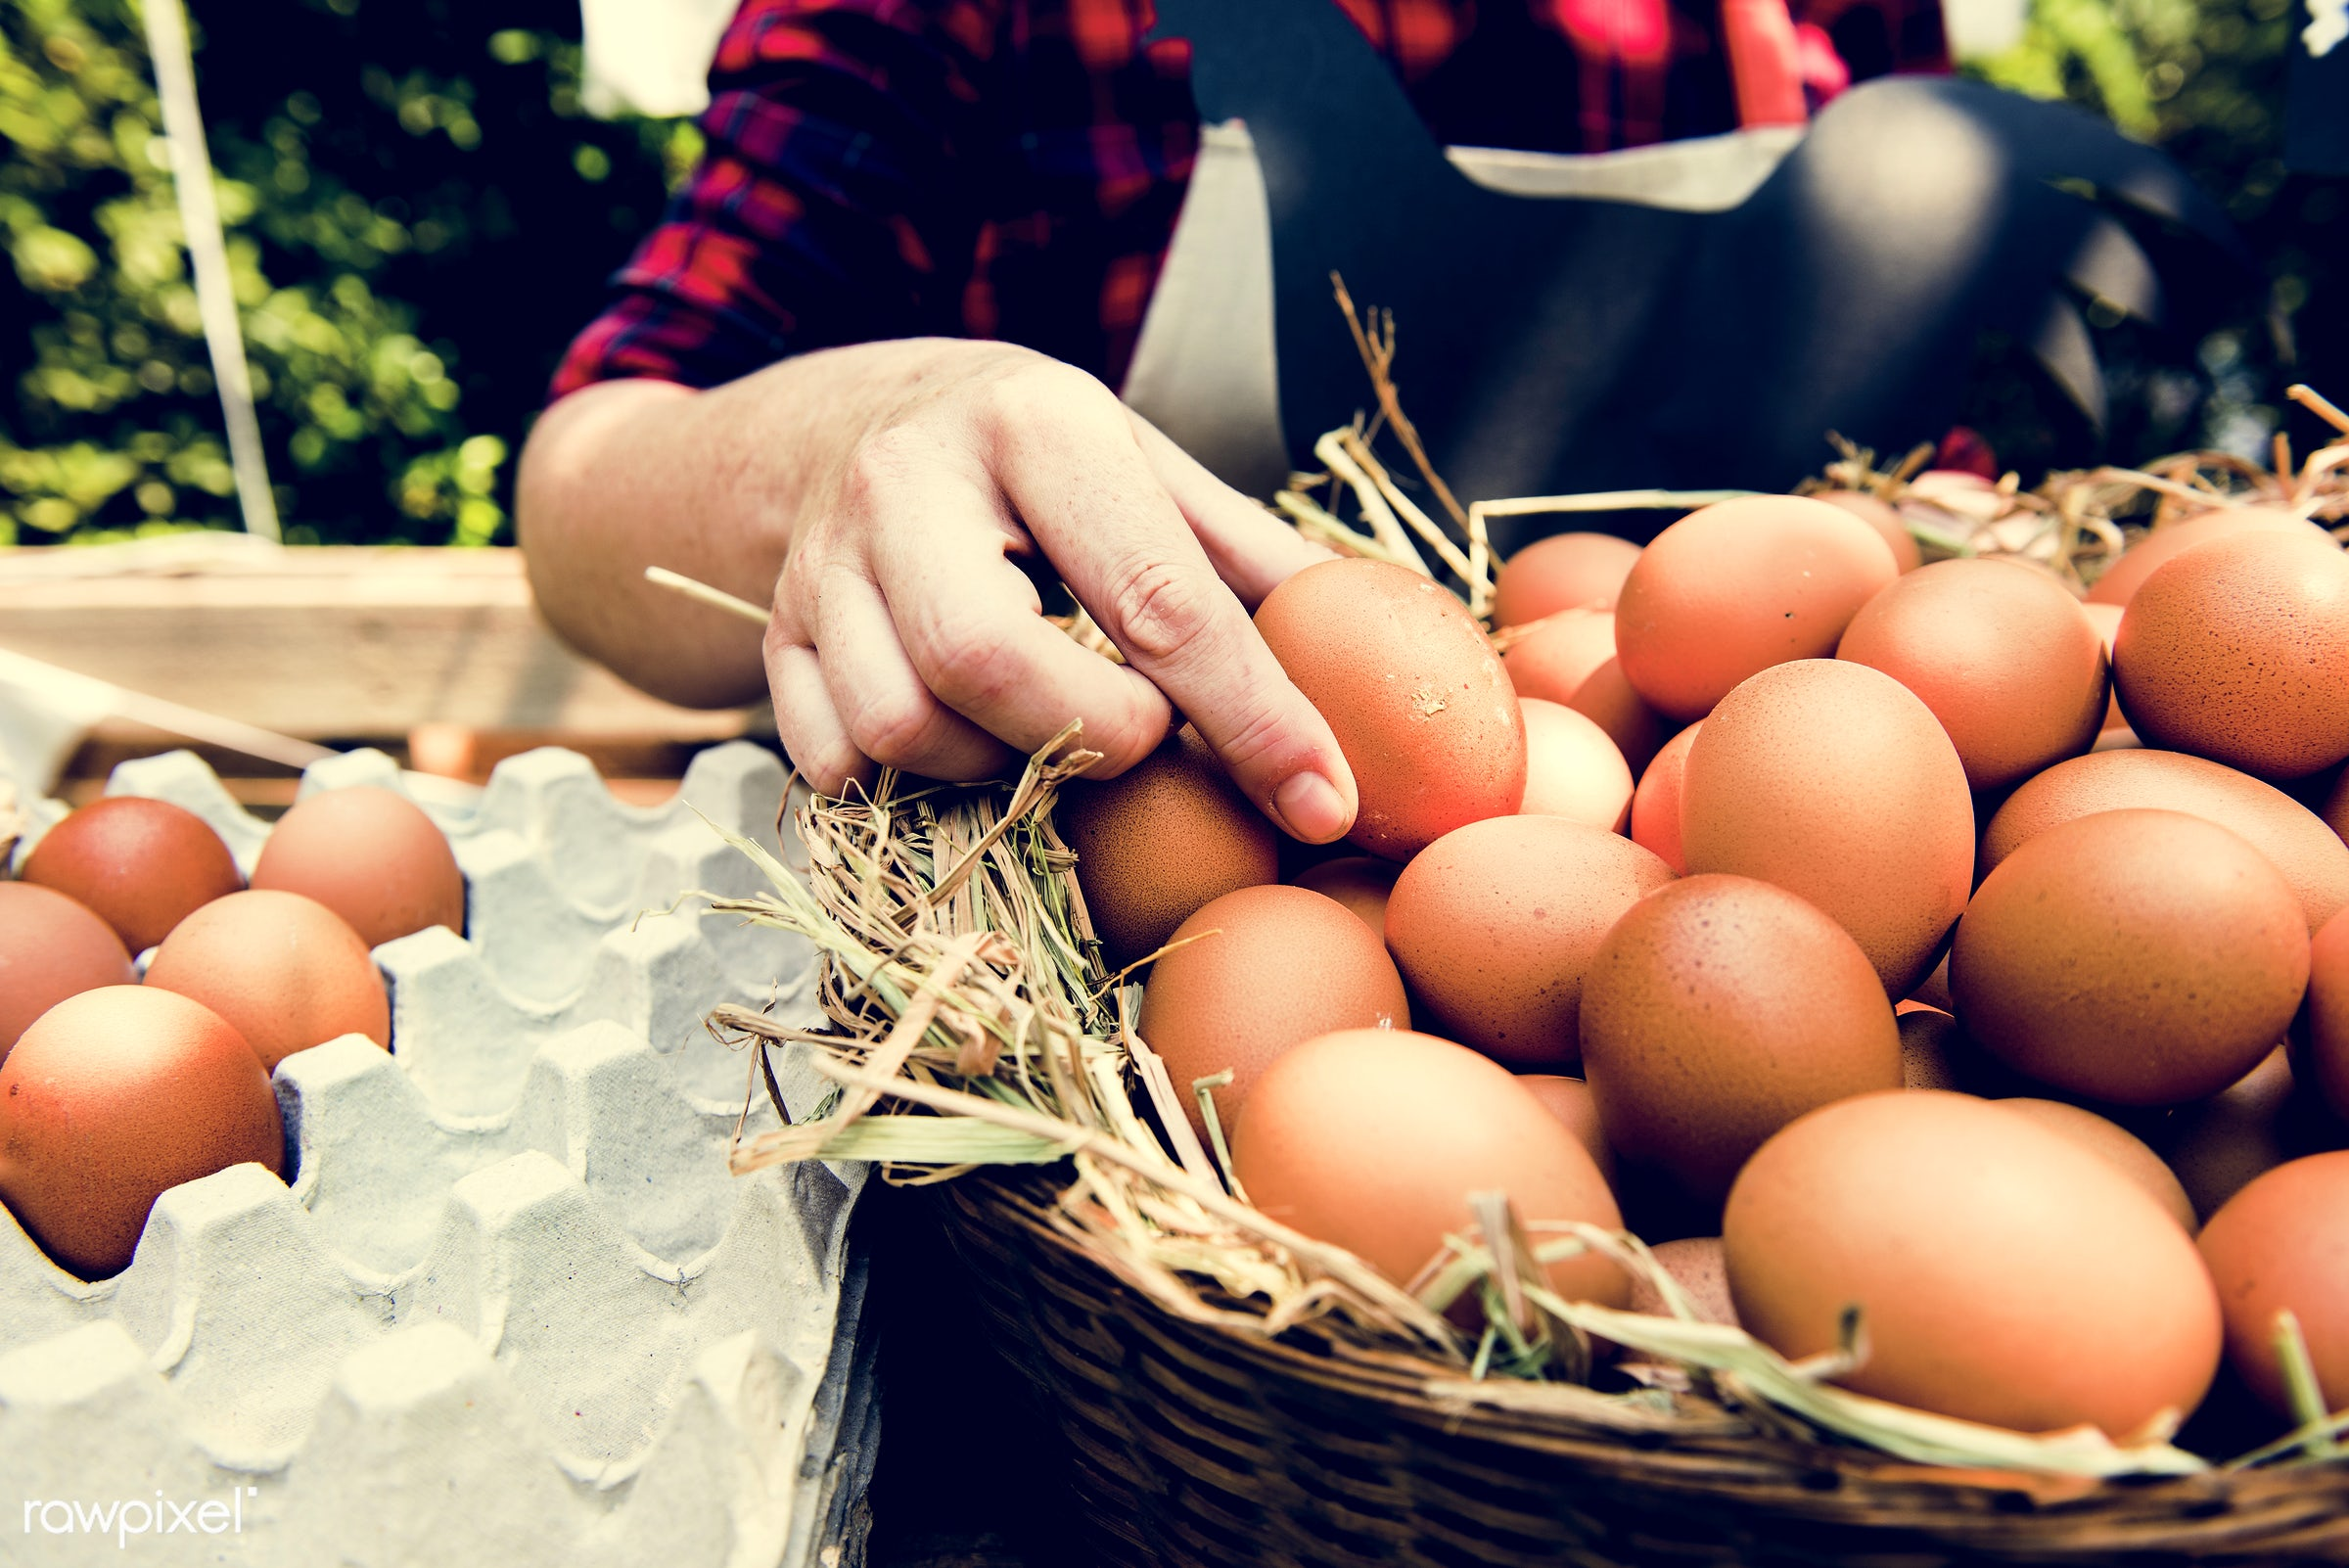 shop, uncooked, cuisine, poultry, round, rooster, house, homemade, farmer, woman, protein, ingredient, oval, selling,...